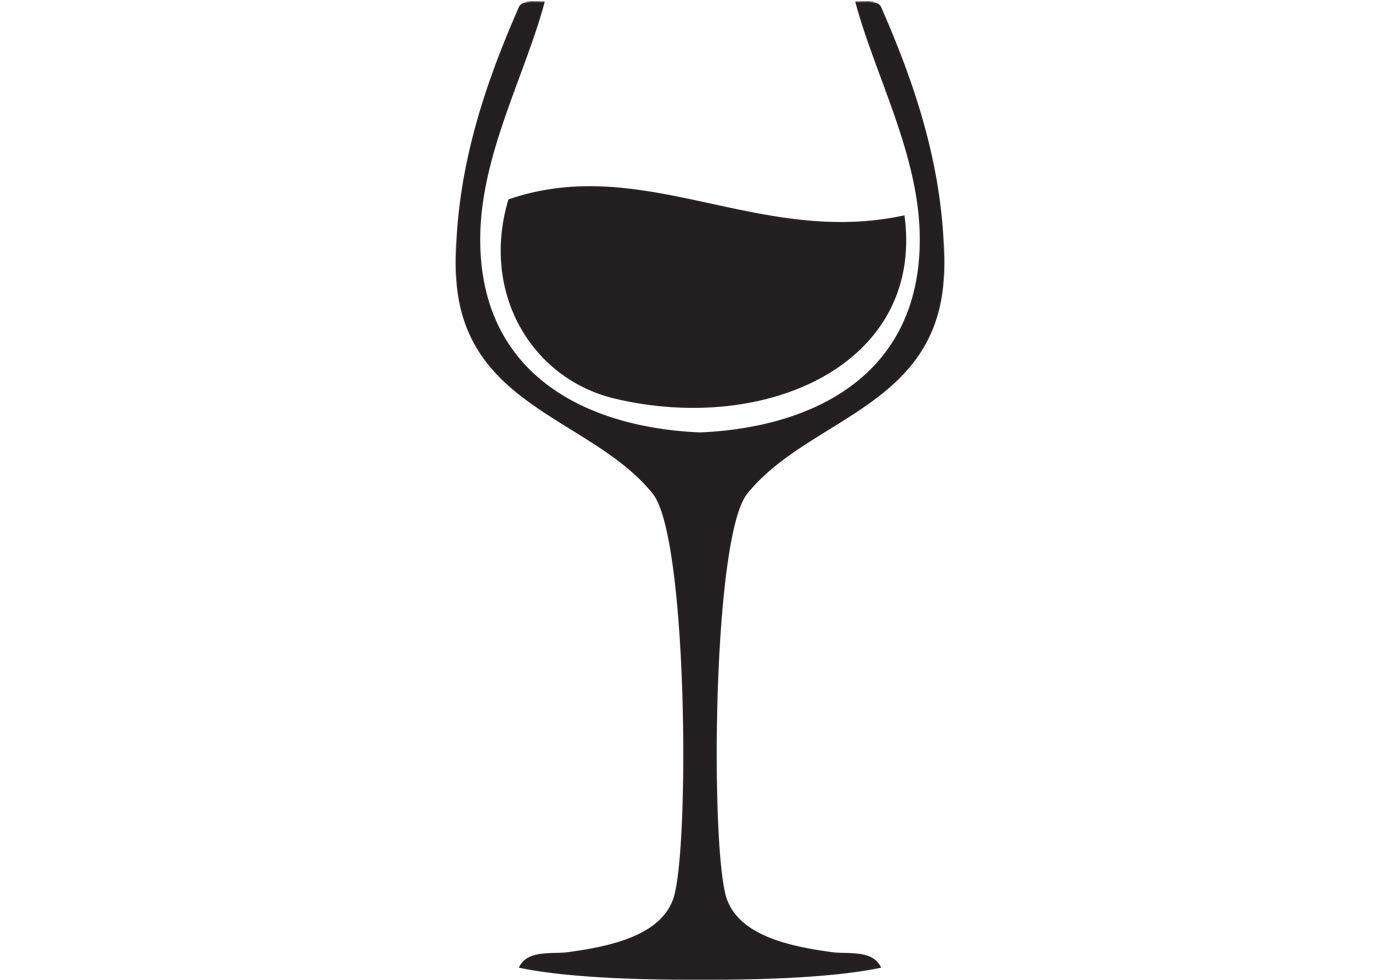 New Wine Glass Vector This Wine Glass Vector Is Great For A Drink